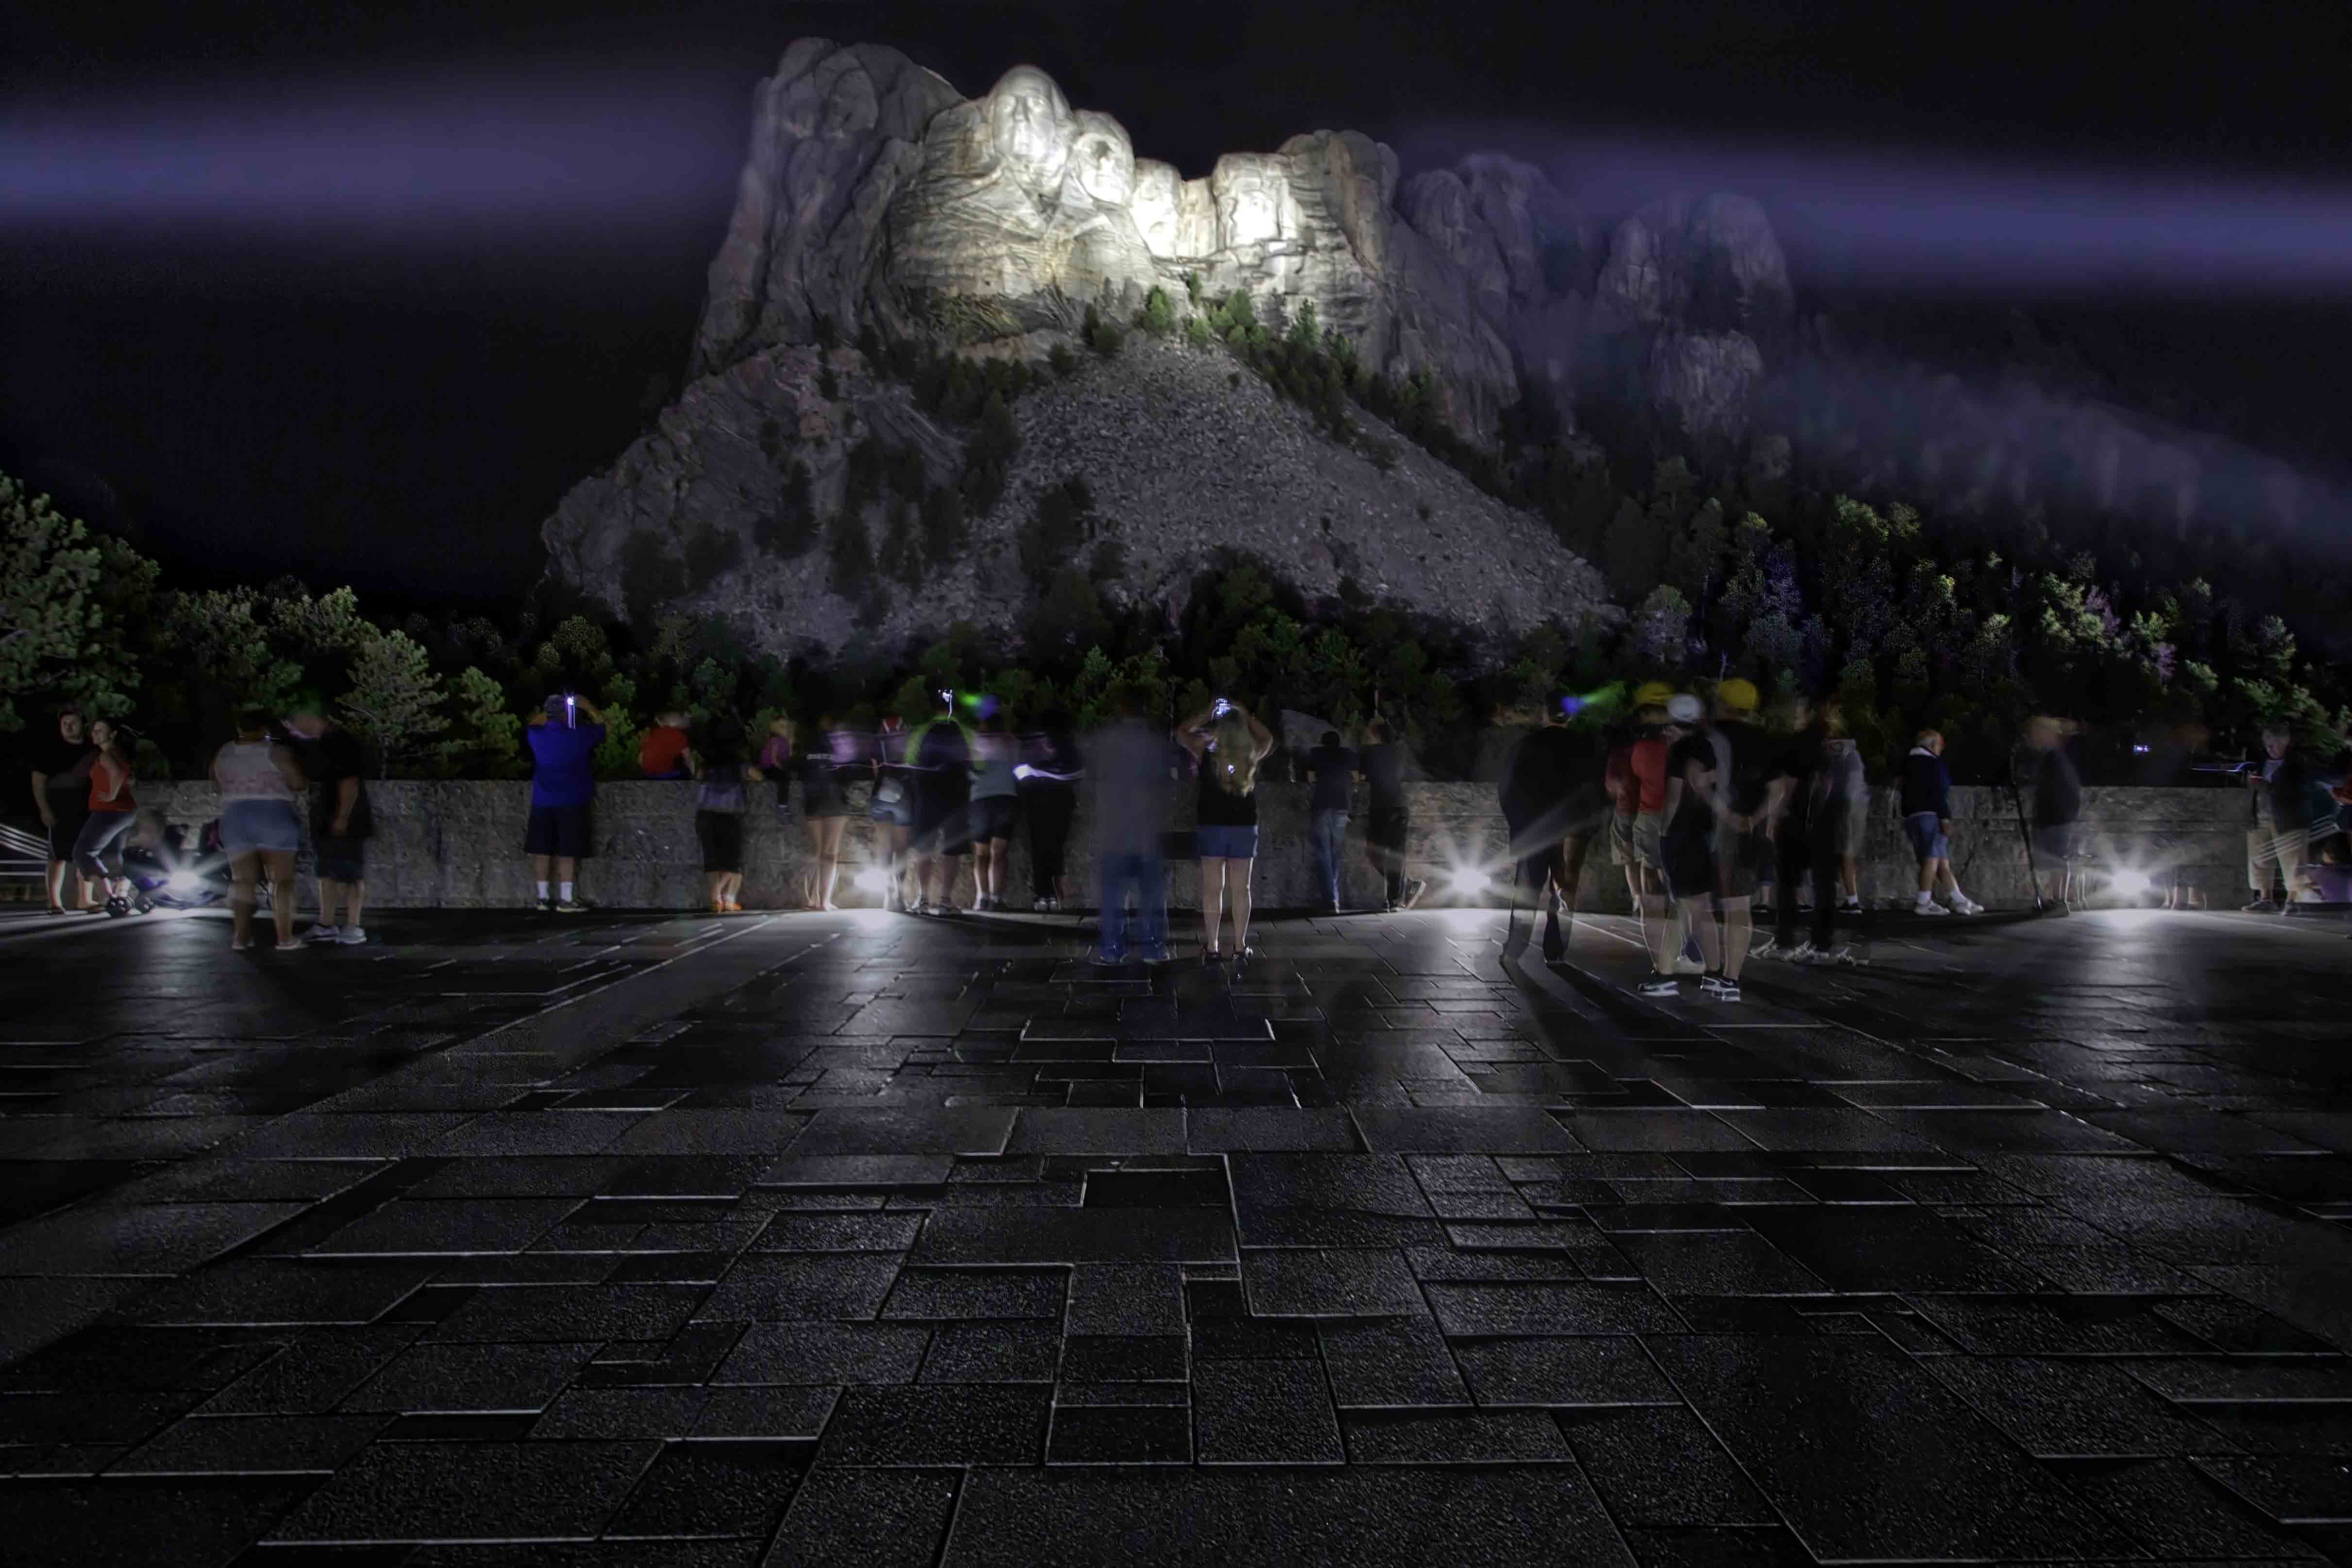 With Jedi Master EMu0027s advice in my ears I looked at everyone elses photos of Mount Rushmore and pondered u201cwhat am I not seeing here? & Mount Rushmore lessons learned. azcodes.com